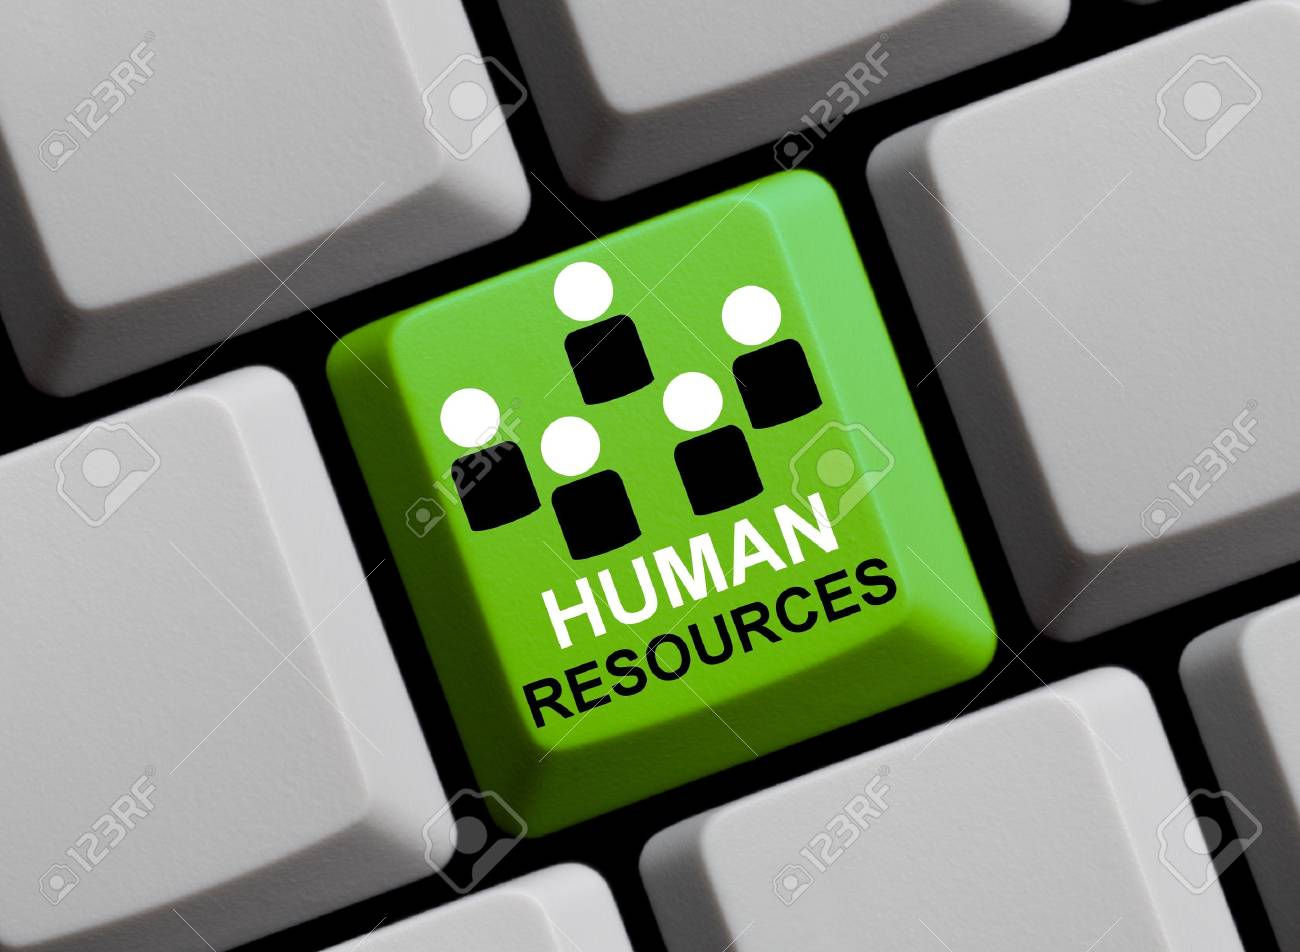 Human resources online Stock Photo - 16277233